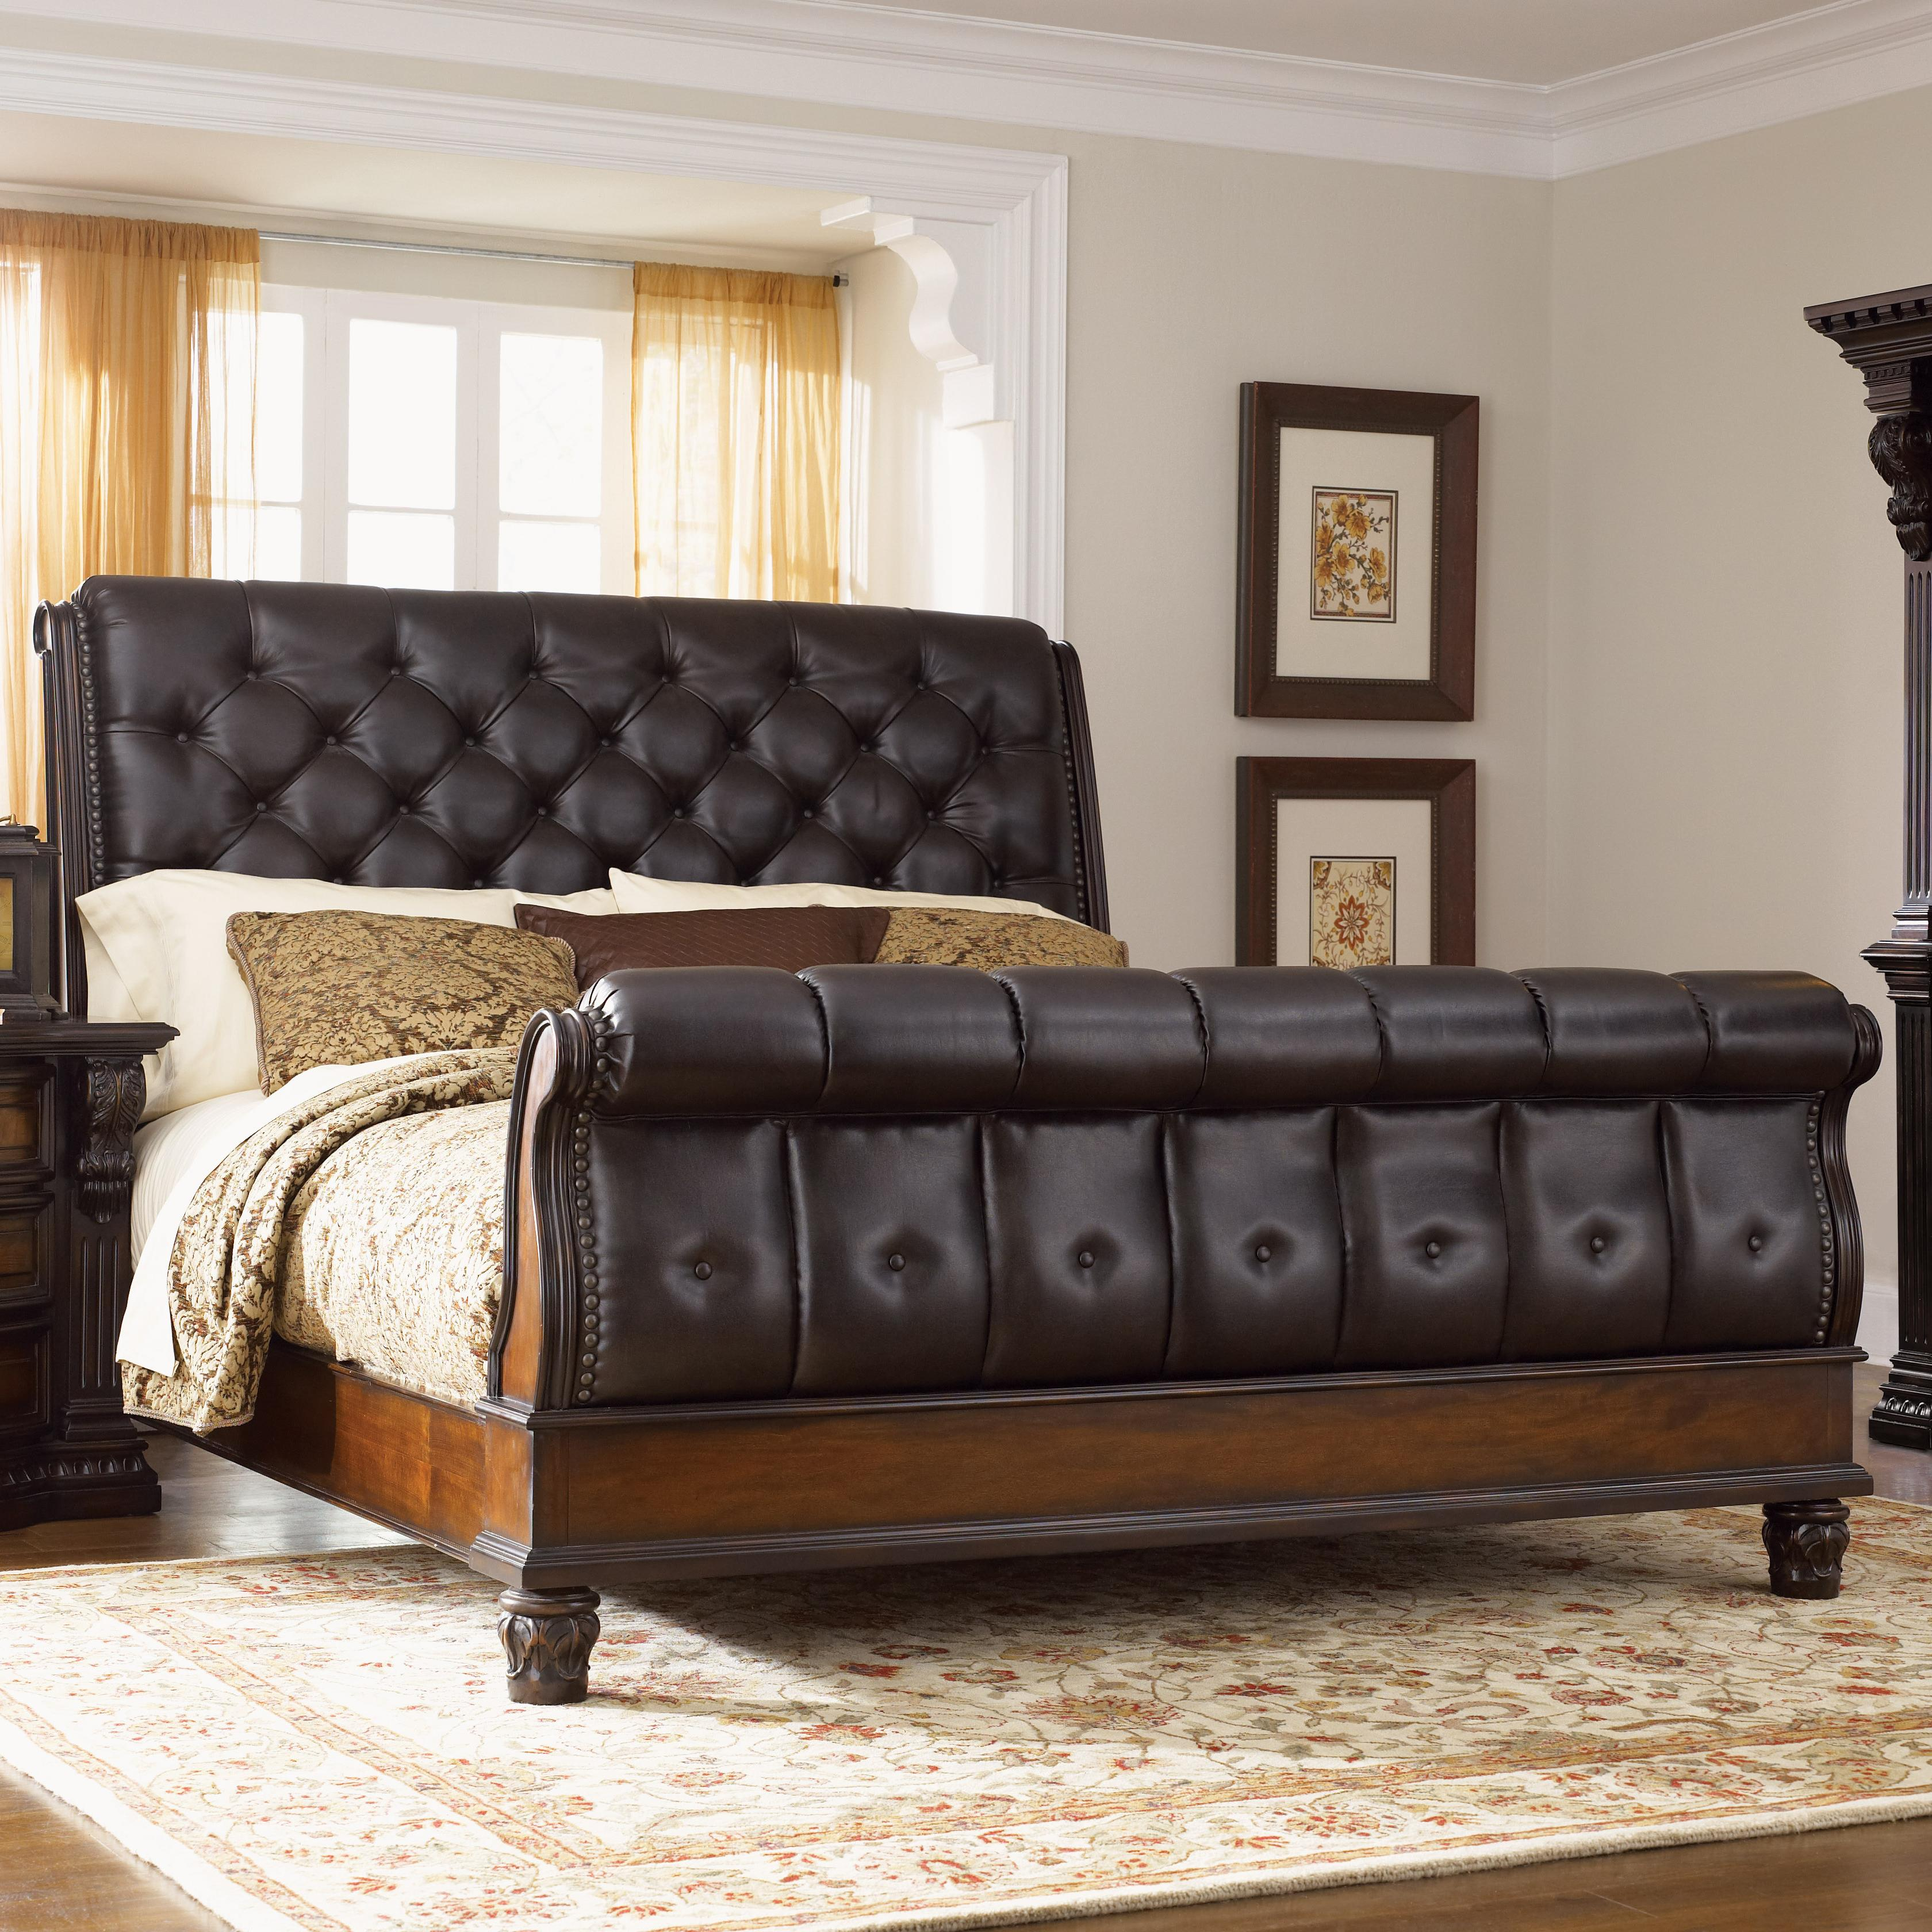 fairmont designs grand estates queen sleigh bed w leather upholstery royal furniture sleigh. Black Bedroom Furniture Sets. Home Design Ideas